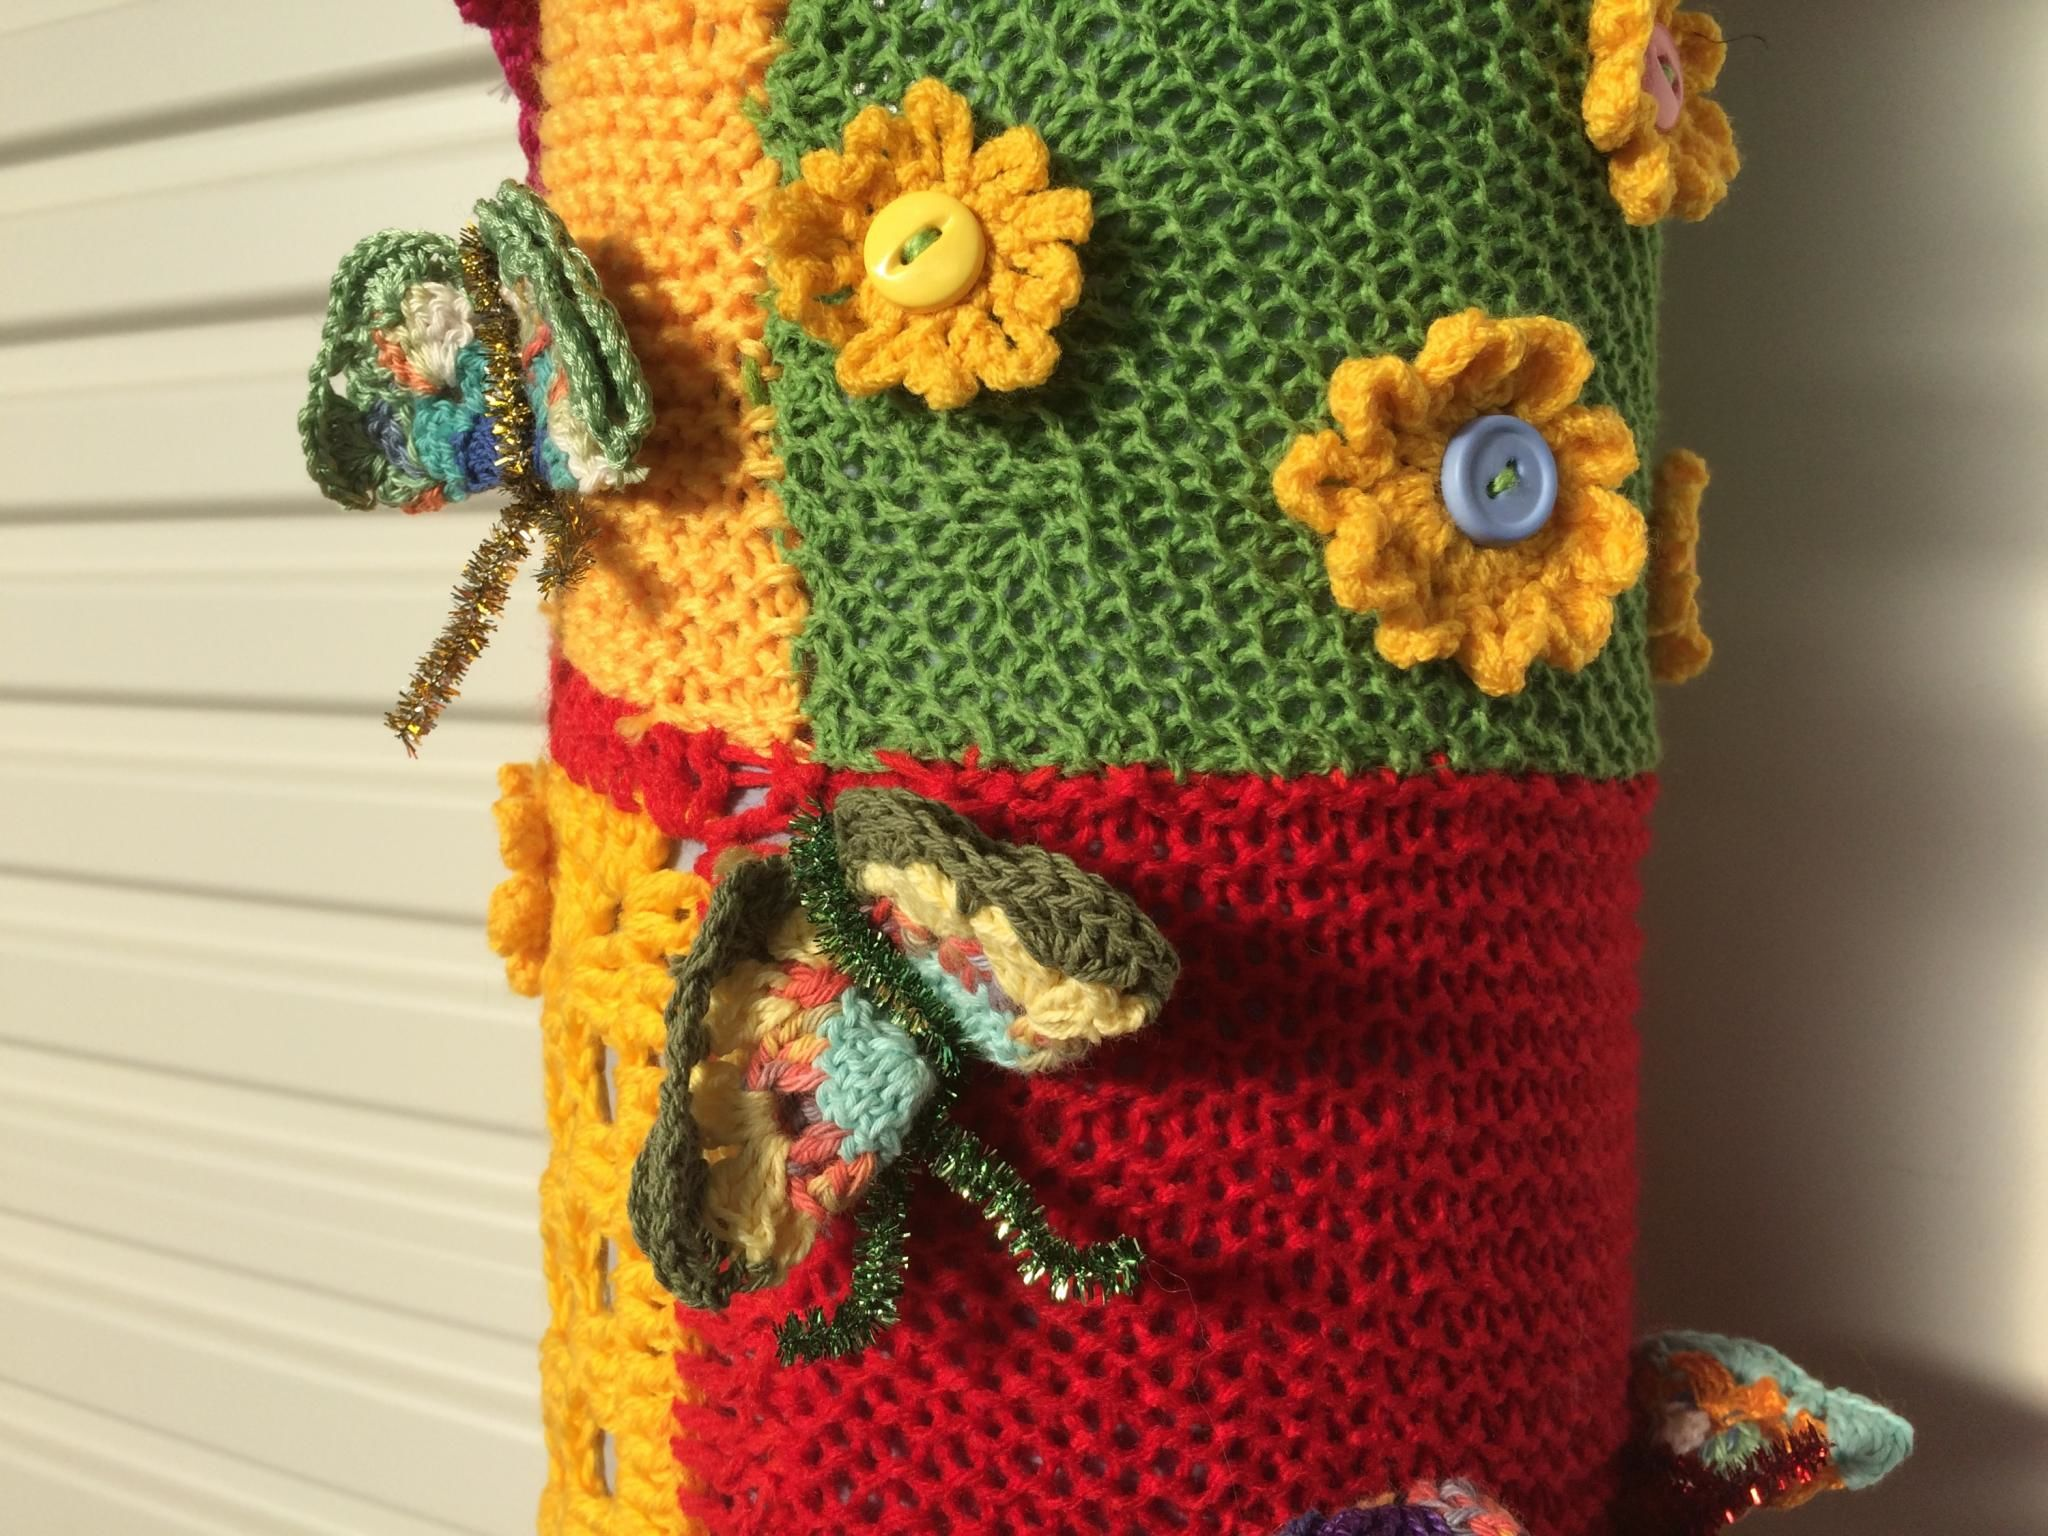 Crochet Patterns For Yarn Bombing : YARN BOMBING AT THE BRUNY ISLAND HEALTH CENTRE YARN BOMBING